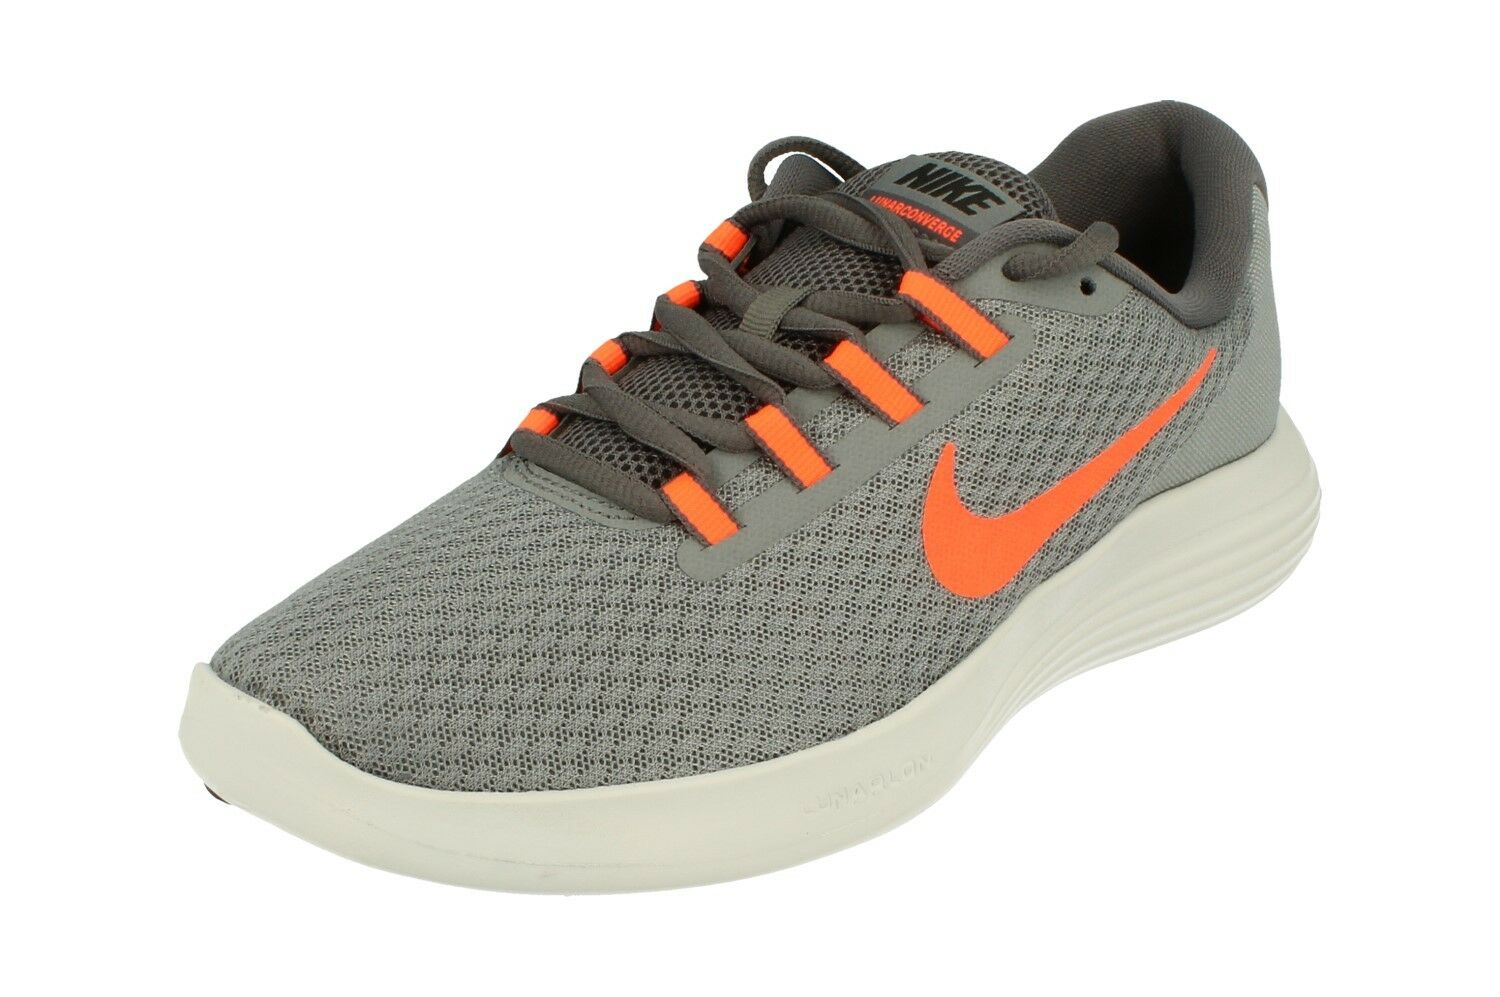 Nike Lunarconverge  Sneakers Uomo Running Trainers 852462 Sneakers  Schuhes 011 3b2586